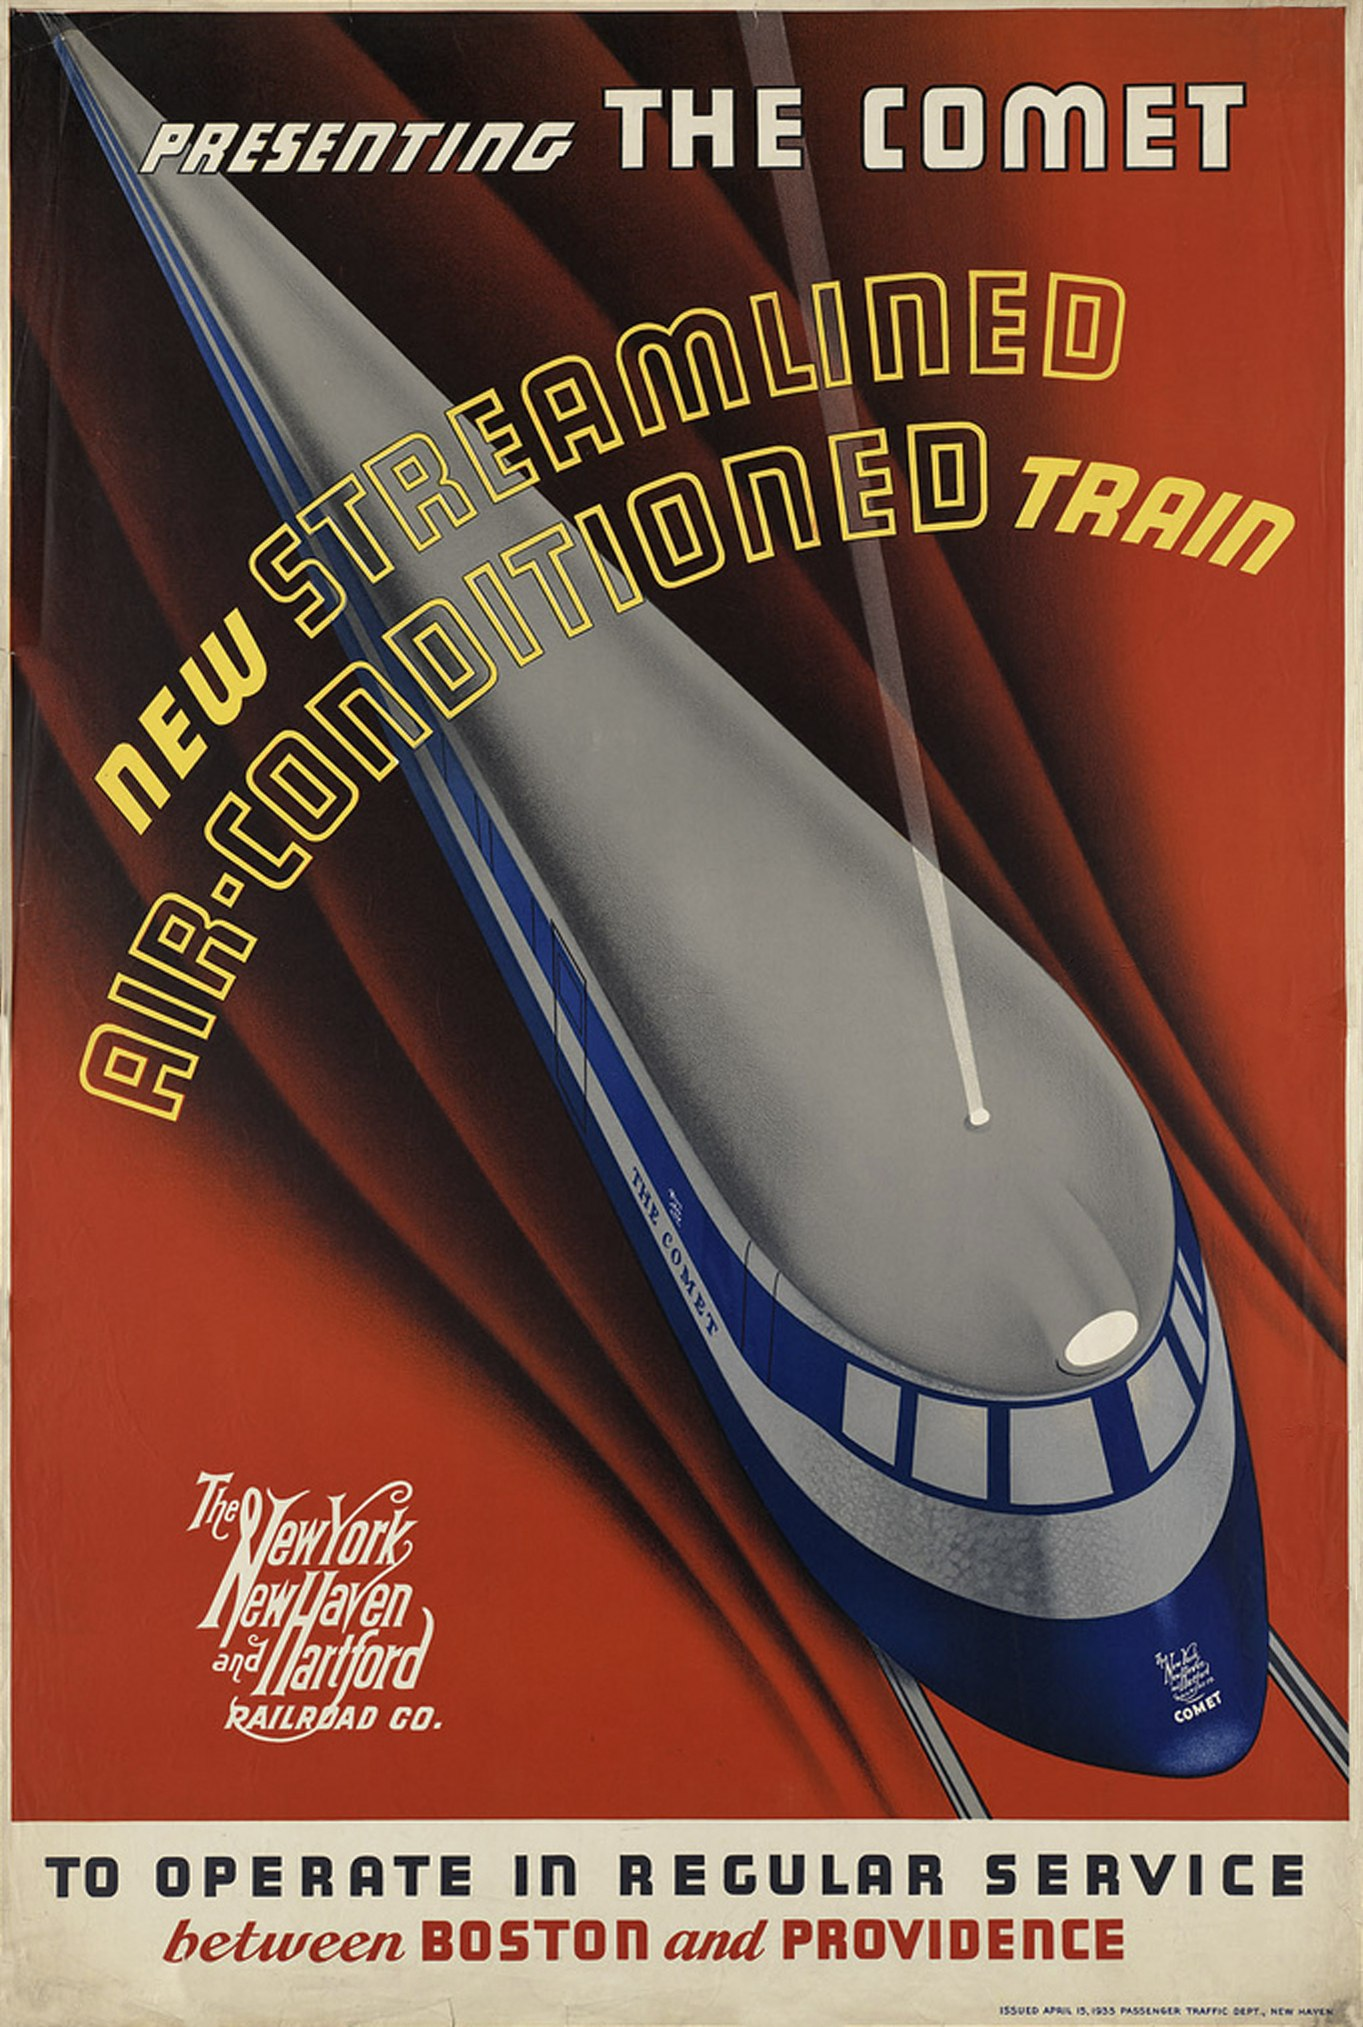 1935 Advertising Poster of The New York, New Haven and Harford Railroad Co named Presenting The Comet, New Streamlined Air-Conditioned Train